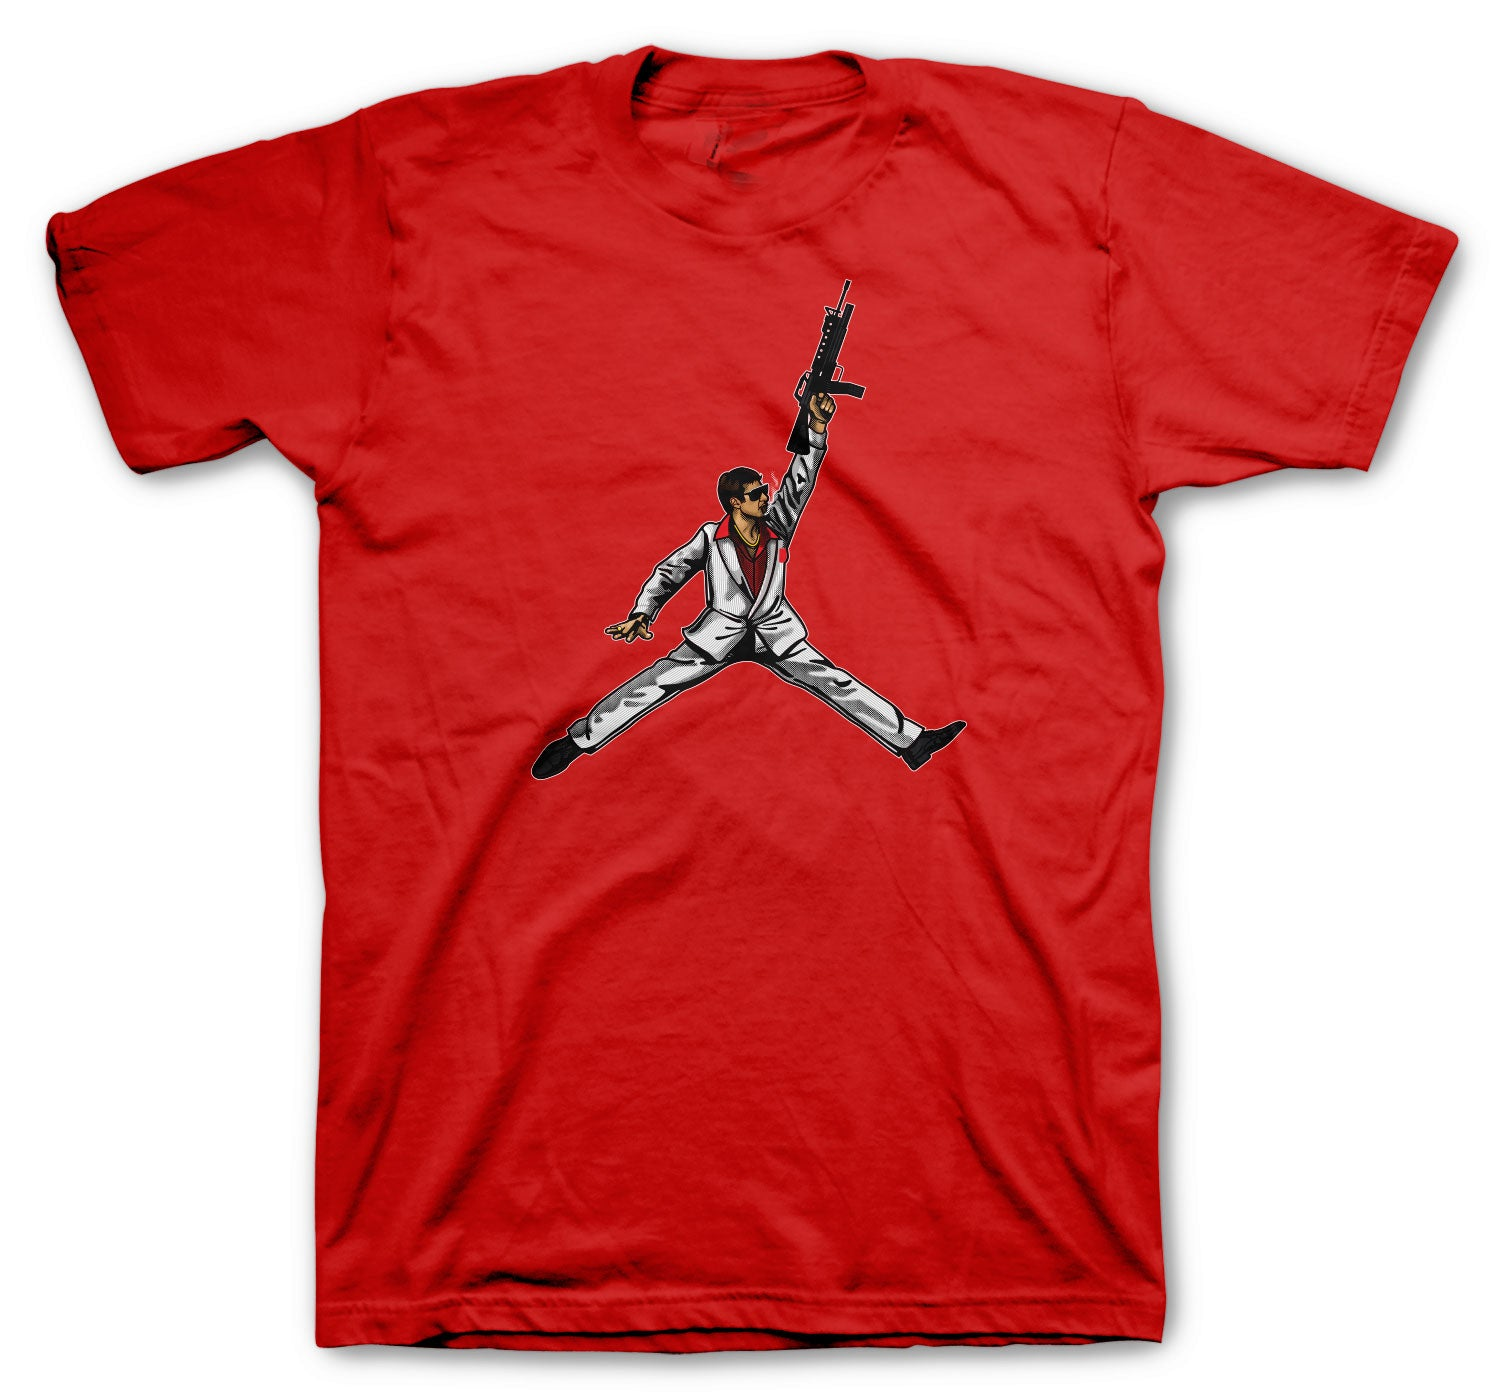 t shirt collection matches mens sneaker collection Jordan 14 gym Red